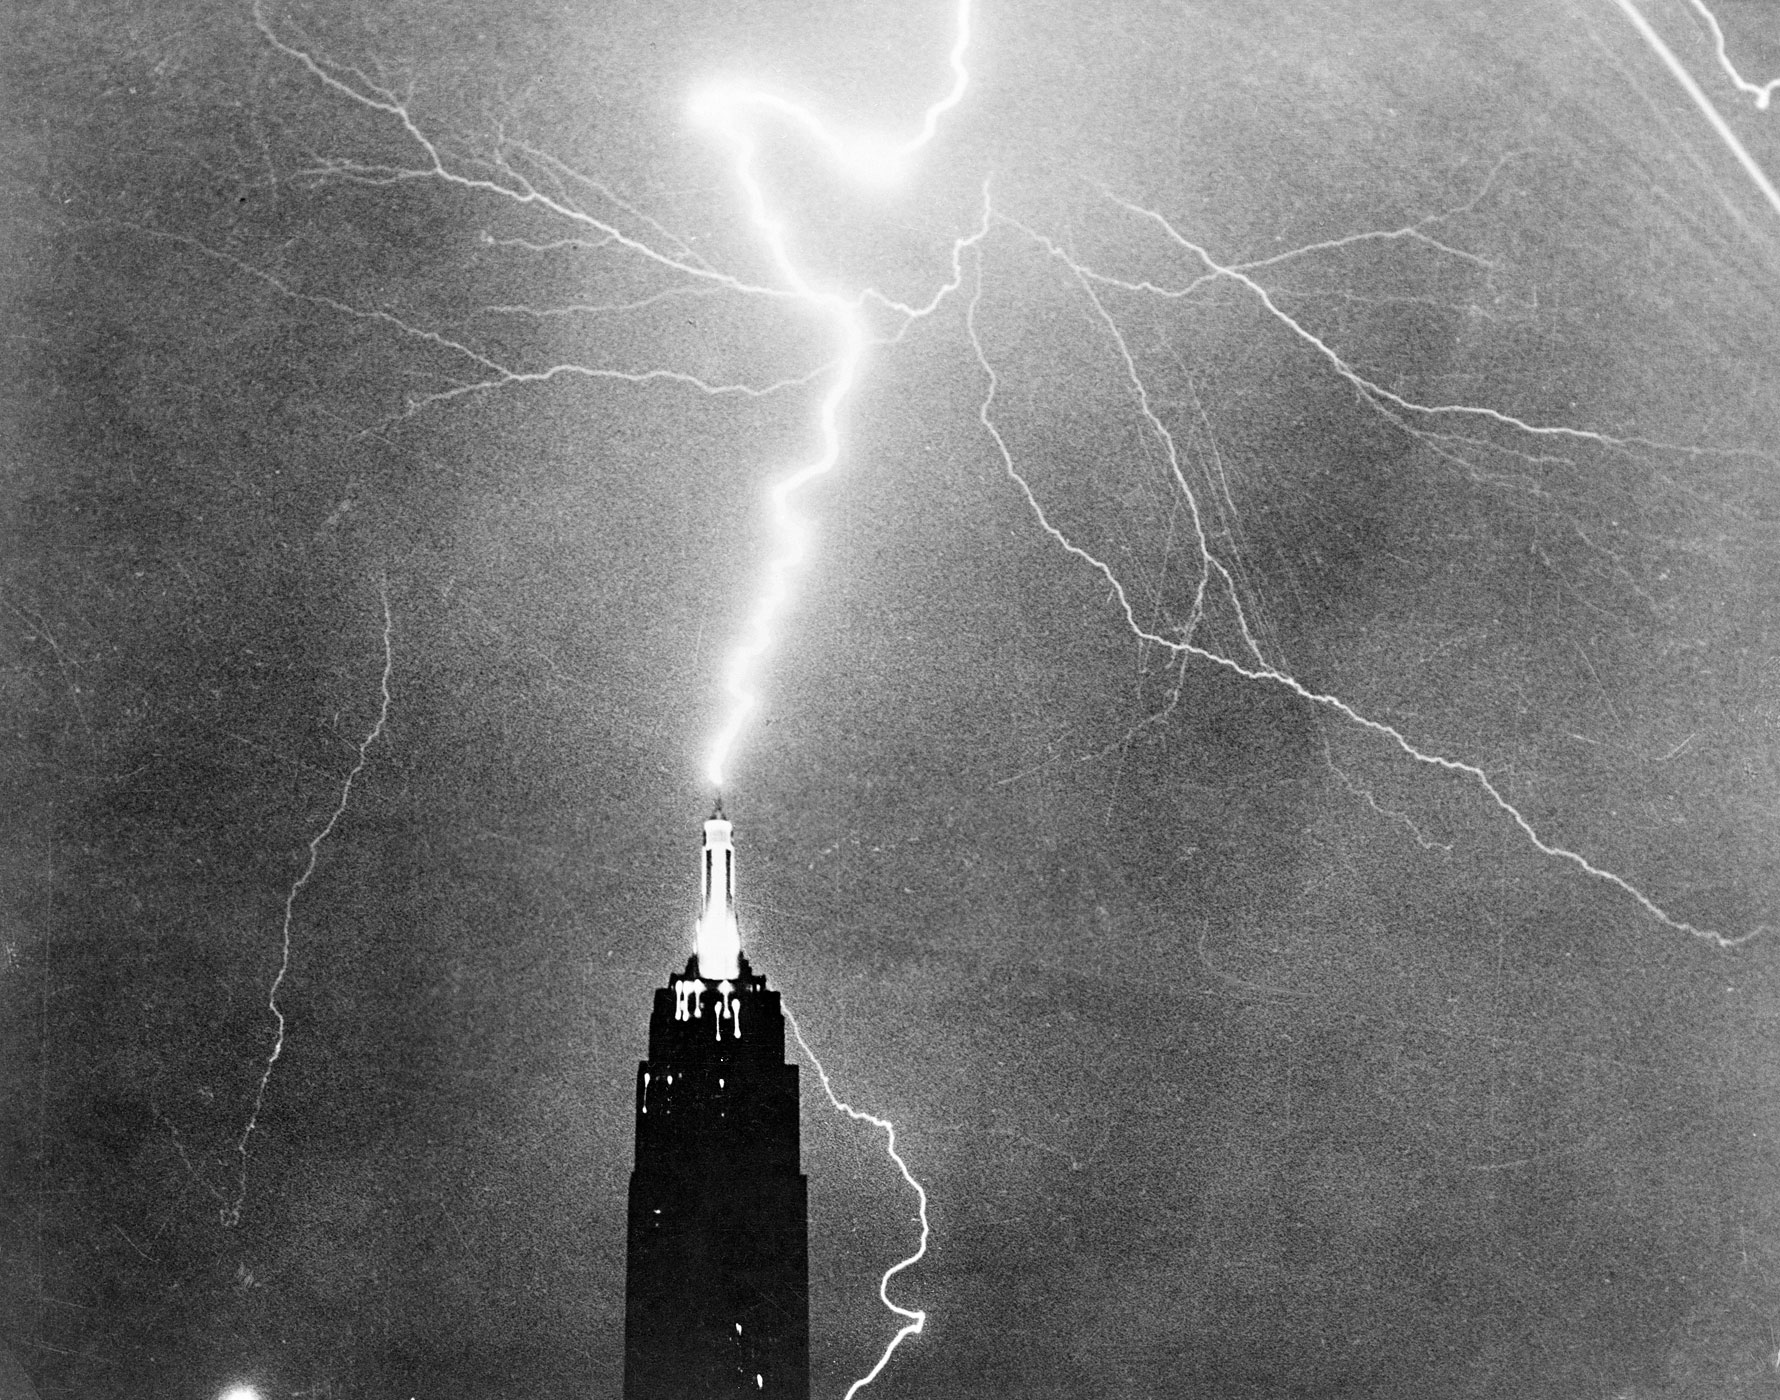 Lightning strikes the Empire State Building in New York City.